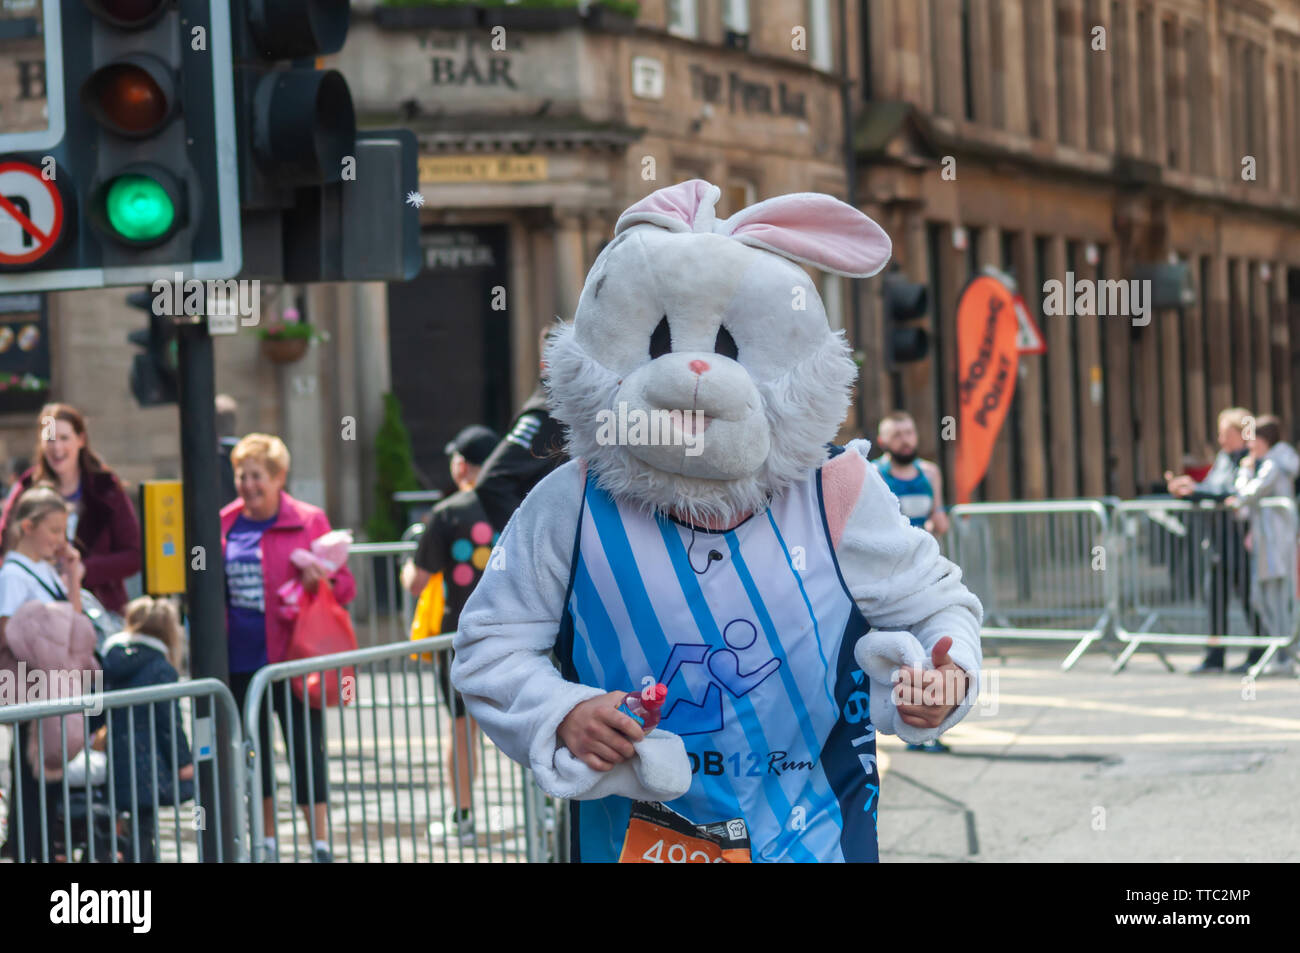 Glasgow, Scotland, UK. 16th June, 2019. A runner dressed in a rabbit costume during the Men's 10K Run which has been an annual event since 2004. Thousands of runners take to the streets of the city to get fit, fundraise, and raise awareness of men's health issues. The run coincides with Fathers Day and starts at the Riverside Museum and  finishes at George Square. Credit: Skully/Alamy Live News - Stock Image